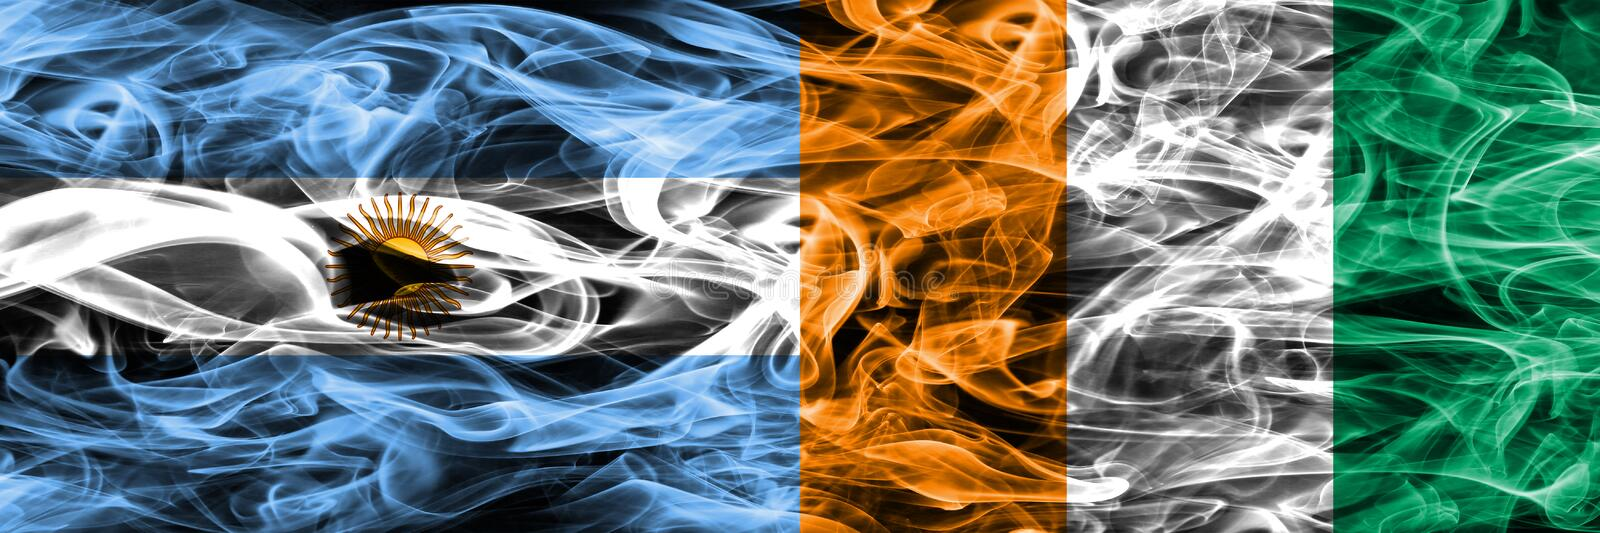 Argentina vs Ivory Coast smoke flags placed side by side. Thick royalty free stock image